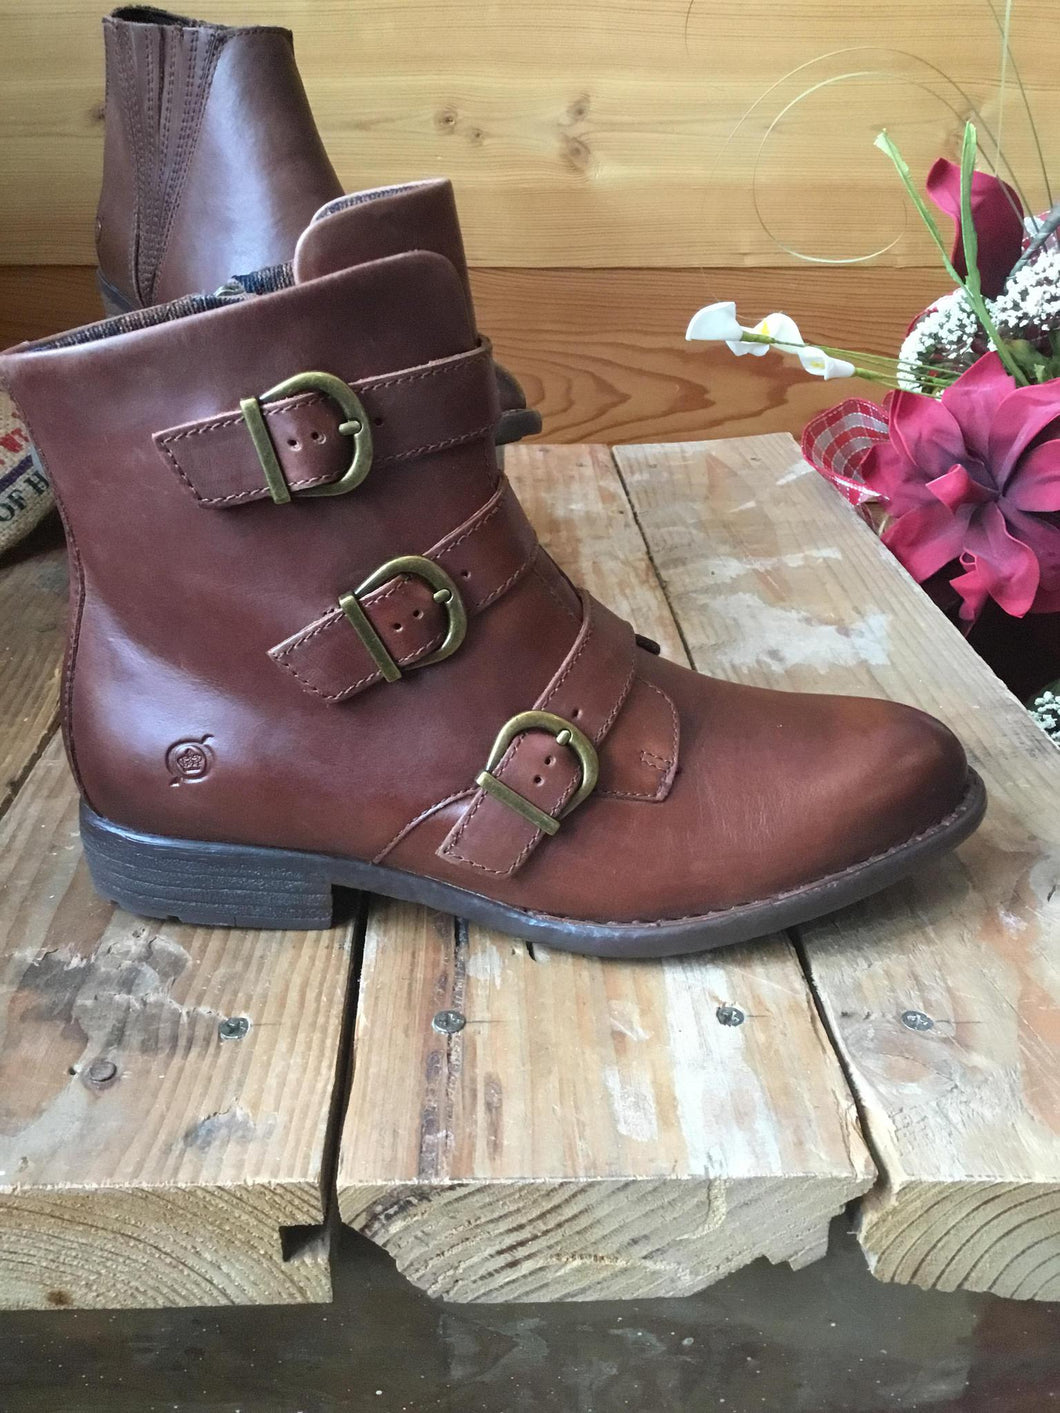 8.5 Bootie Nivine Luggage Brown